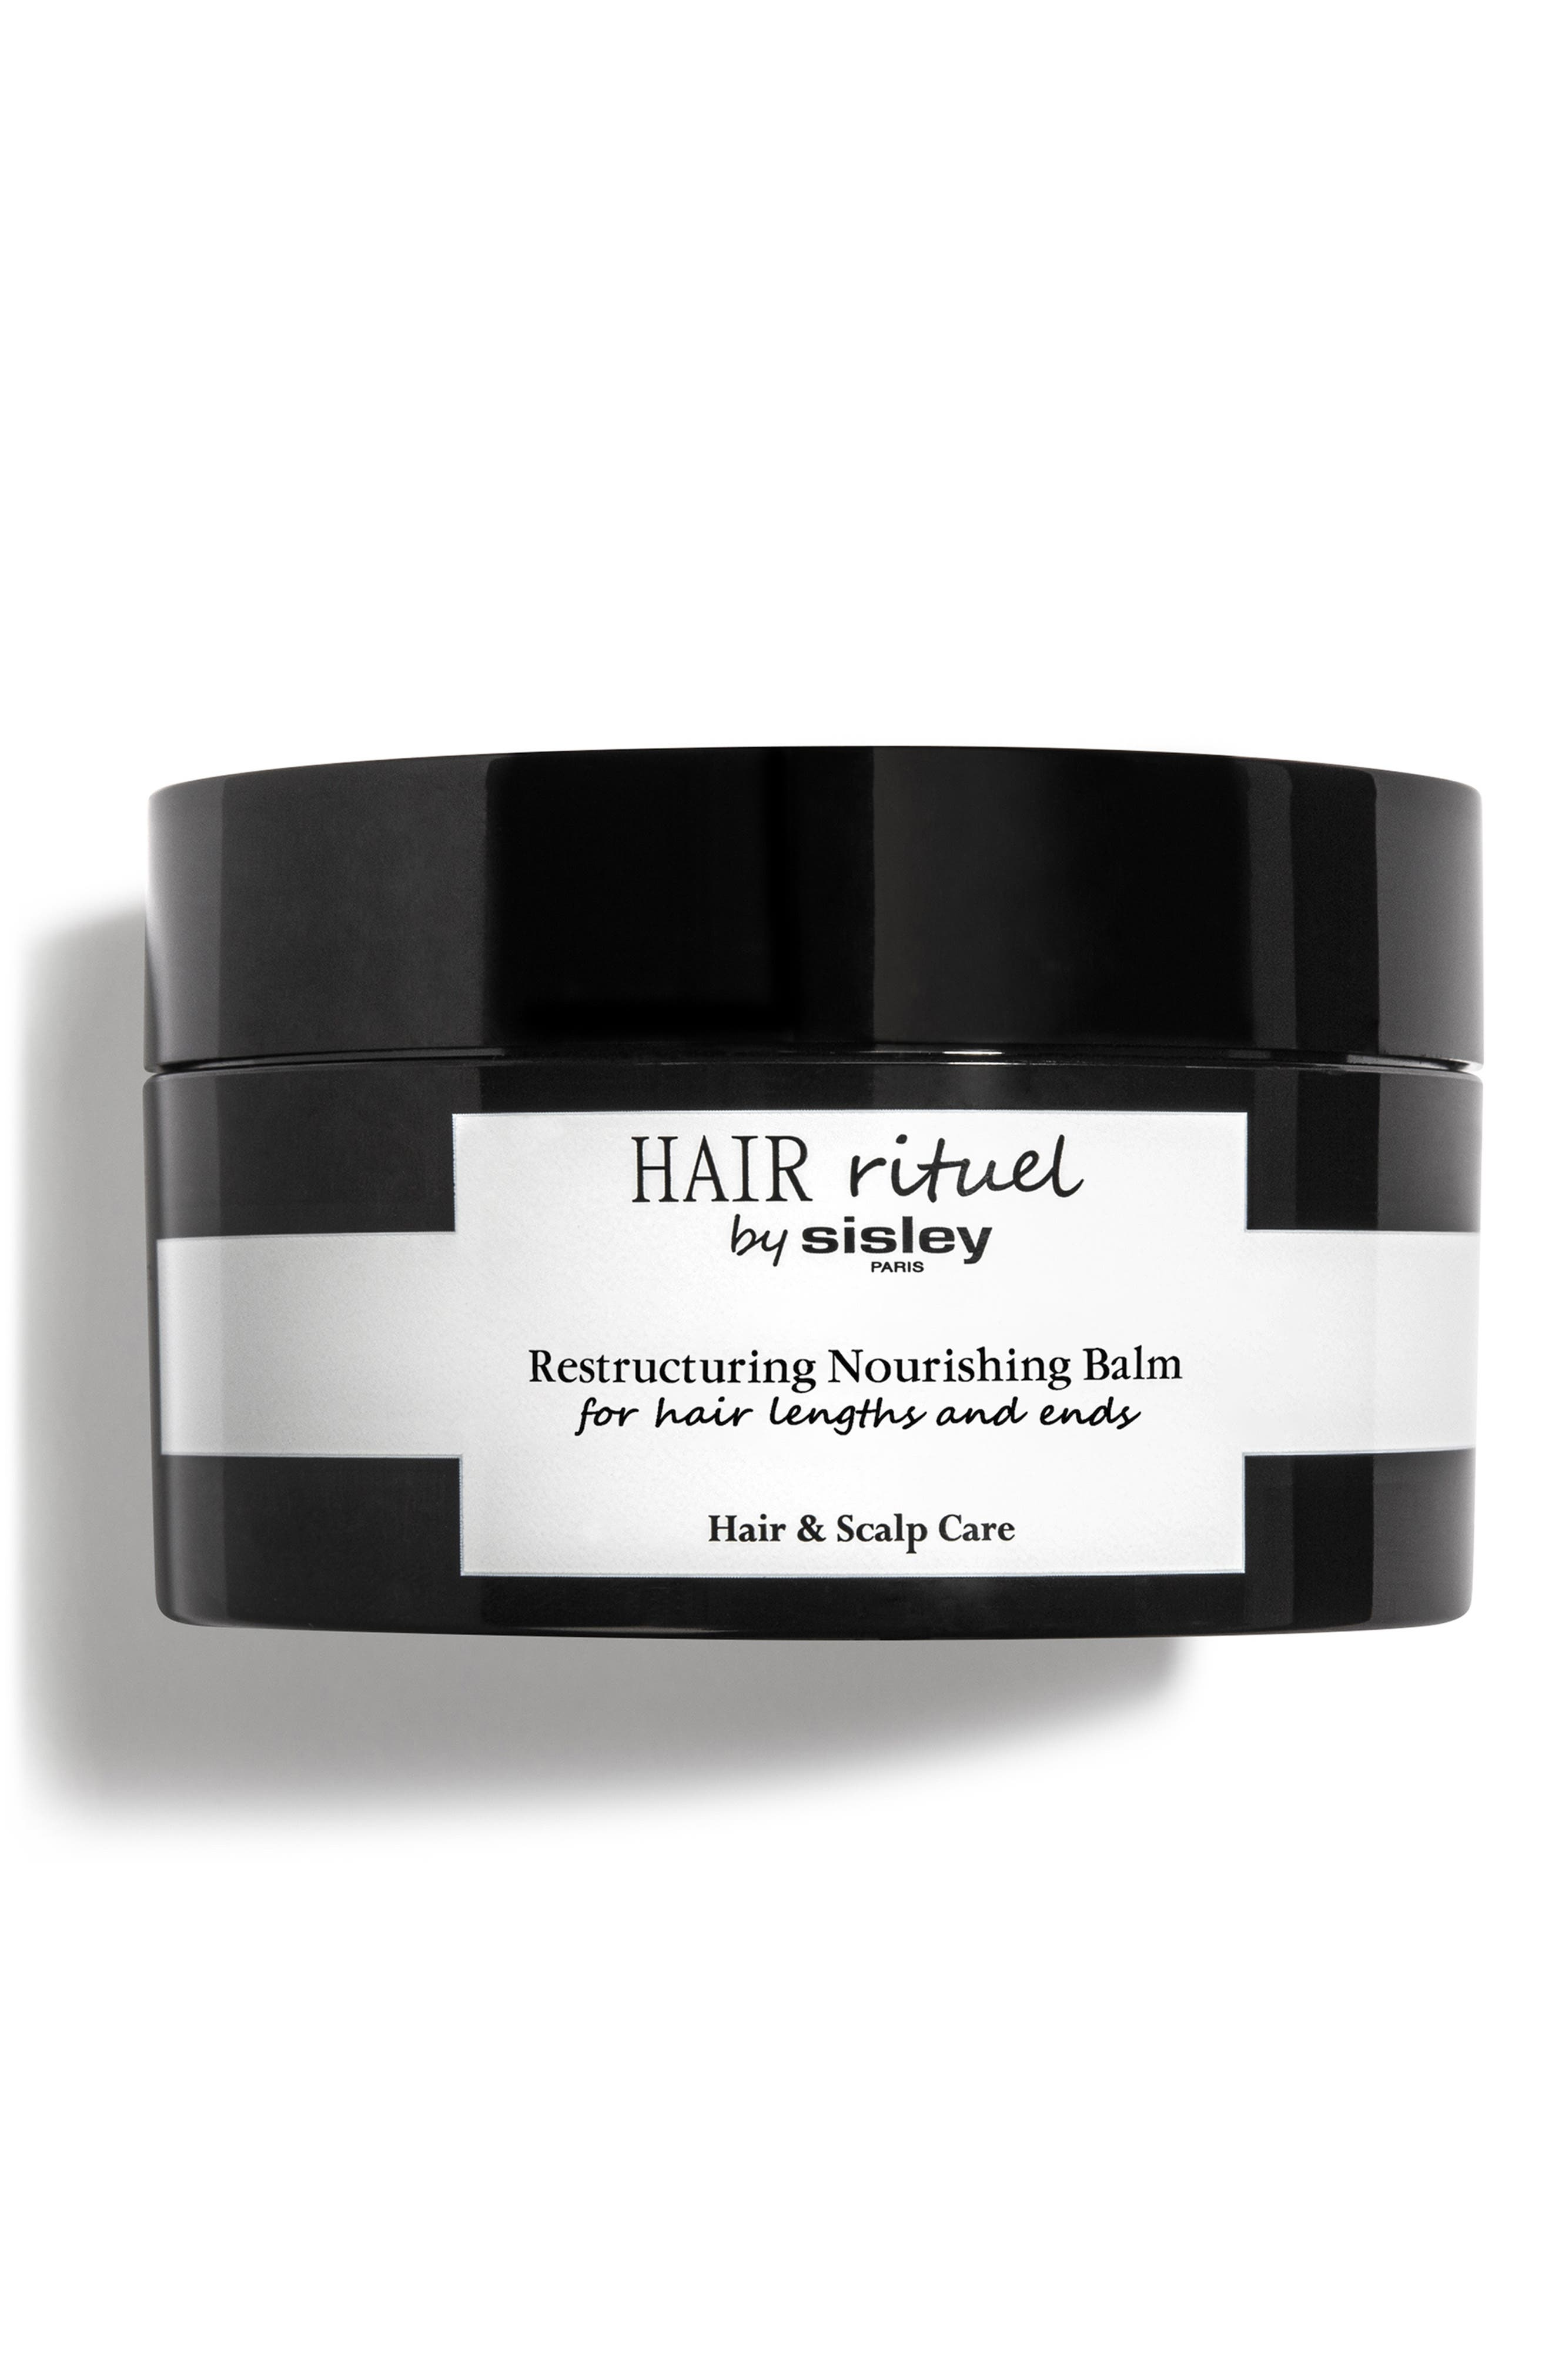 What it is: A pre-shampoo hair treatment that deeply nourishes damaged, dry and brittle hair. What it does: This silky balm is enriched with a precious combination of botanical oils that act on the hair fiber to intensely nourish, restore and restructure hair. It instantly transforms from a balm into an oil for a sensorial experience. How to use: Apply to dry hair once per week. Spread the balm along the lengths and on the ends of hair,